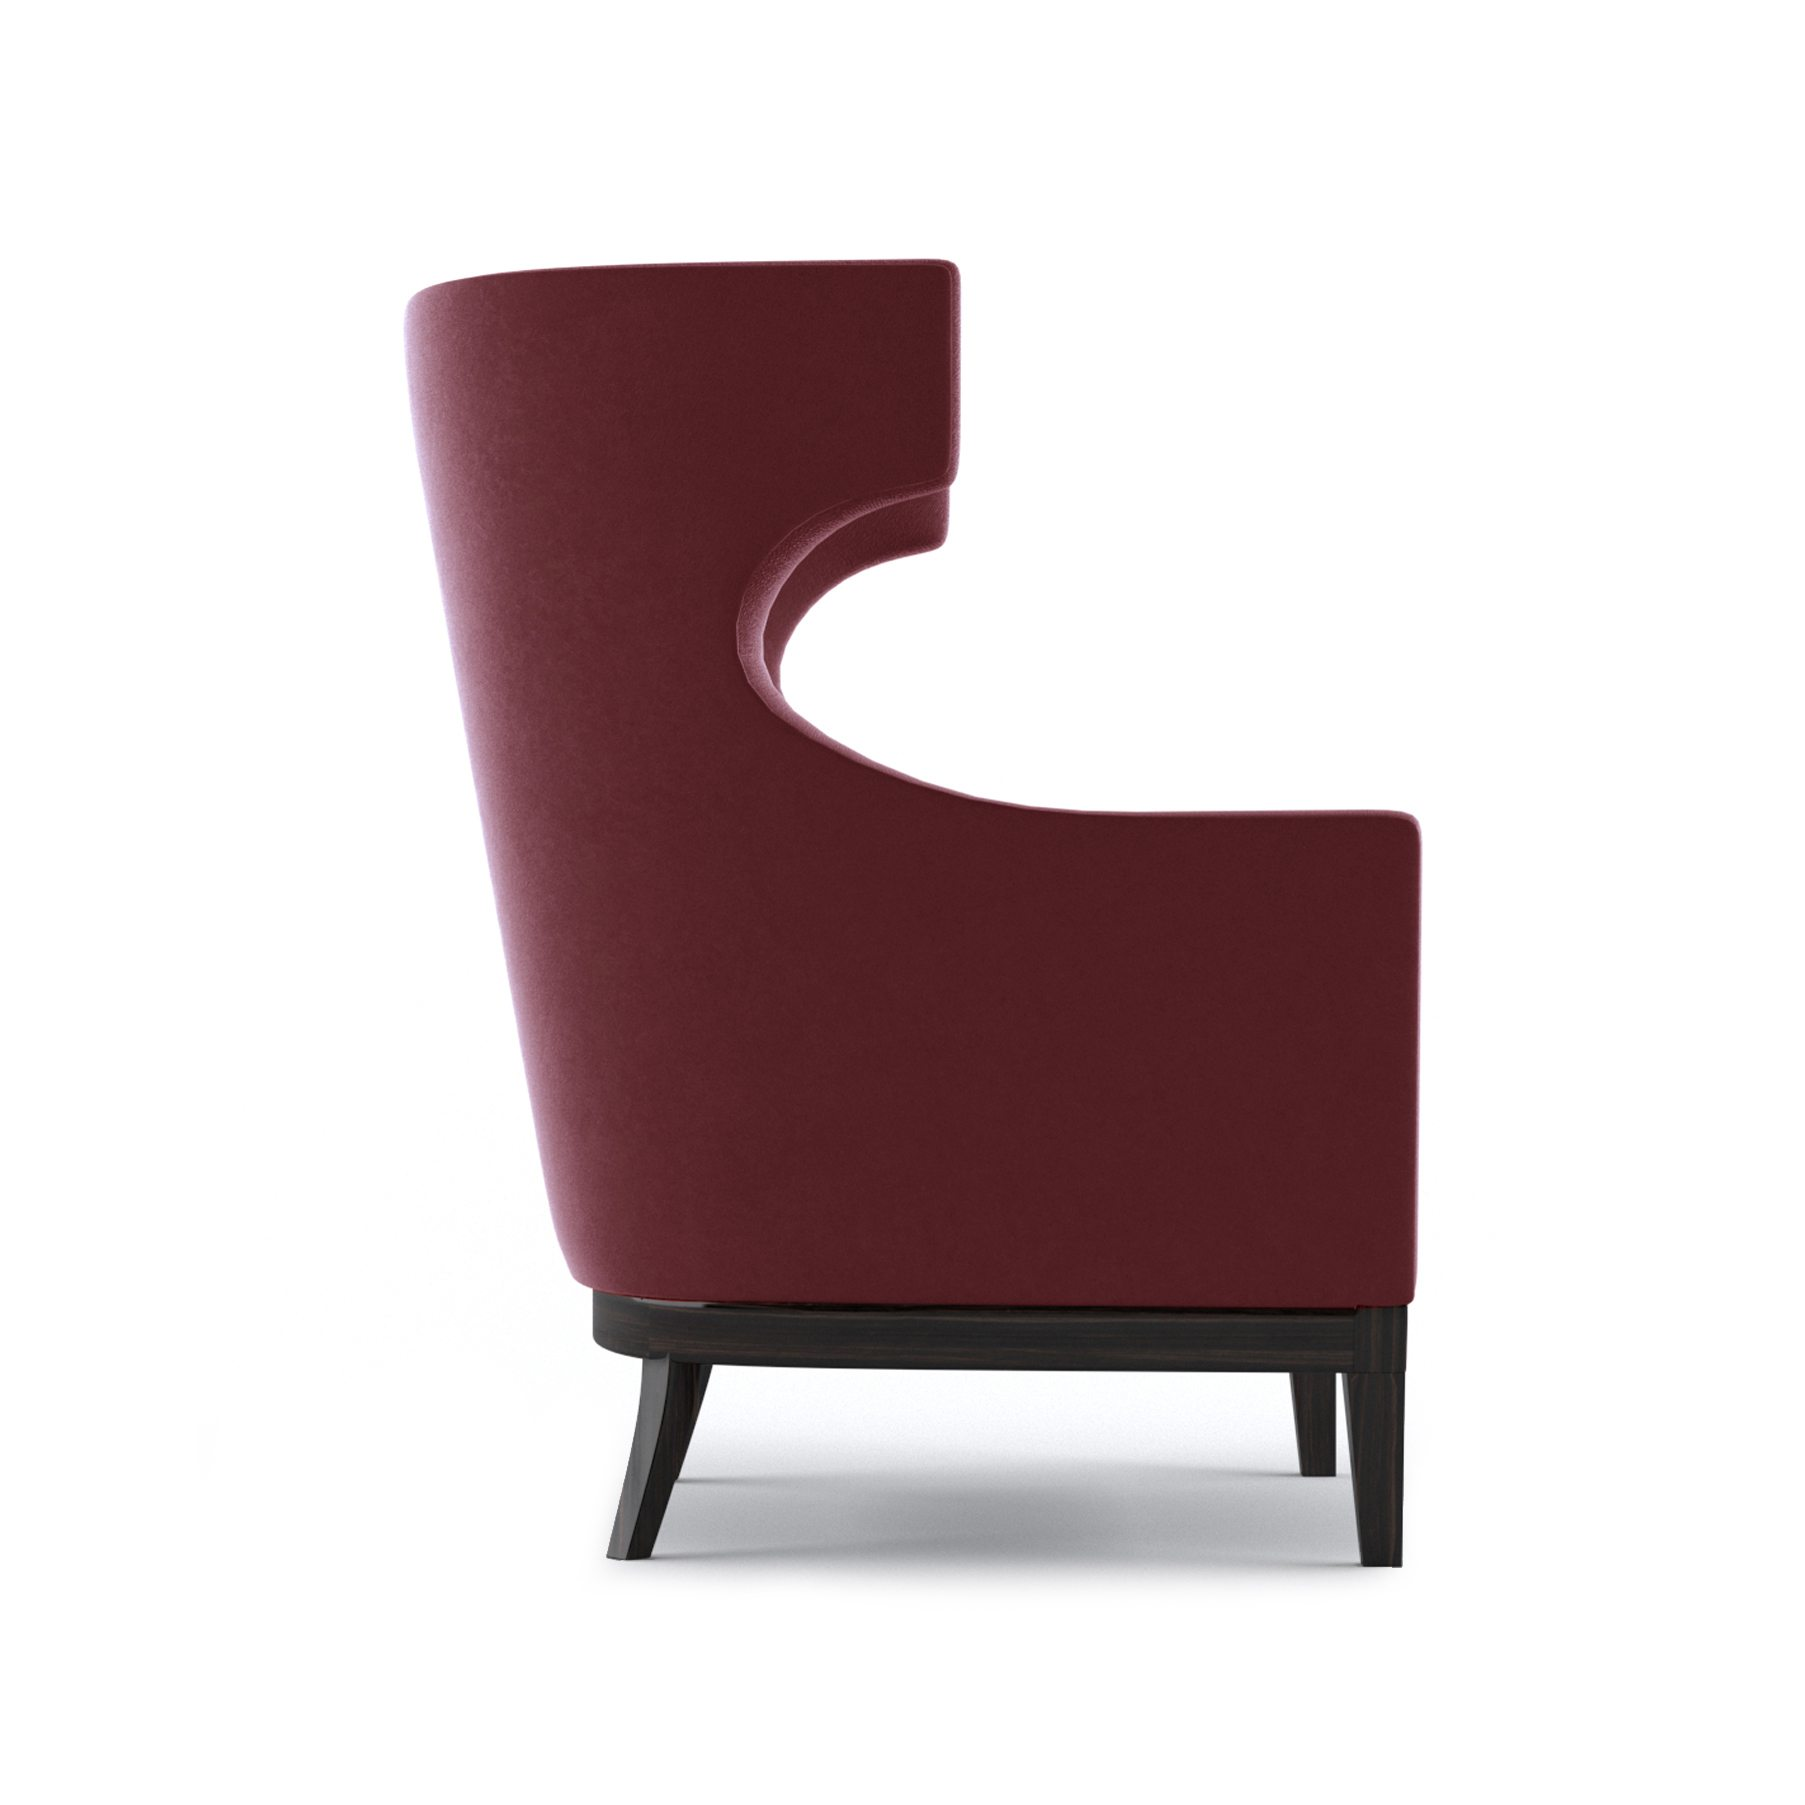 Kington Occasional Chair by Bonham & Bonham Rouge 10Kington Occasional Chair by Bonham & Bonham Rouge 10Kington Occasional Chair by Bonham & Bonham Rouge 10